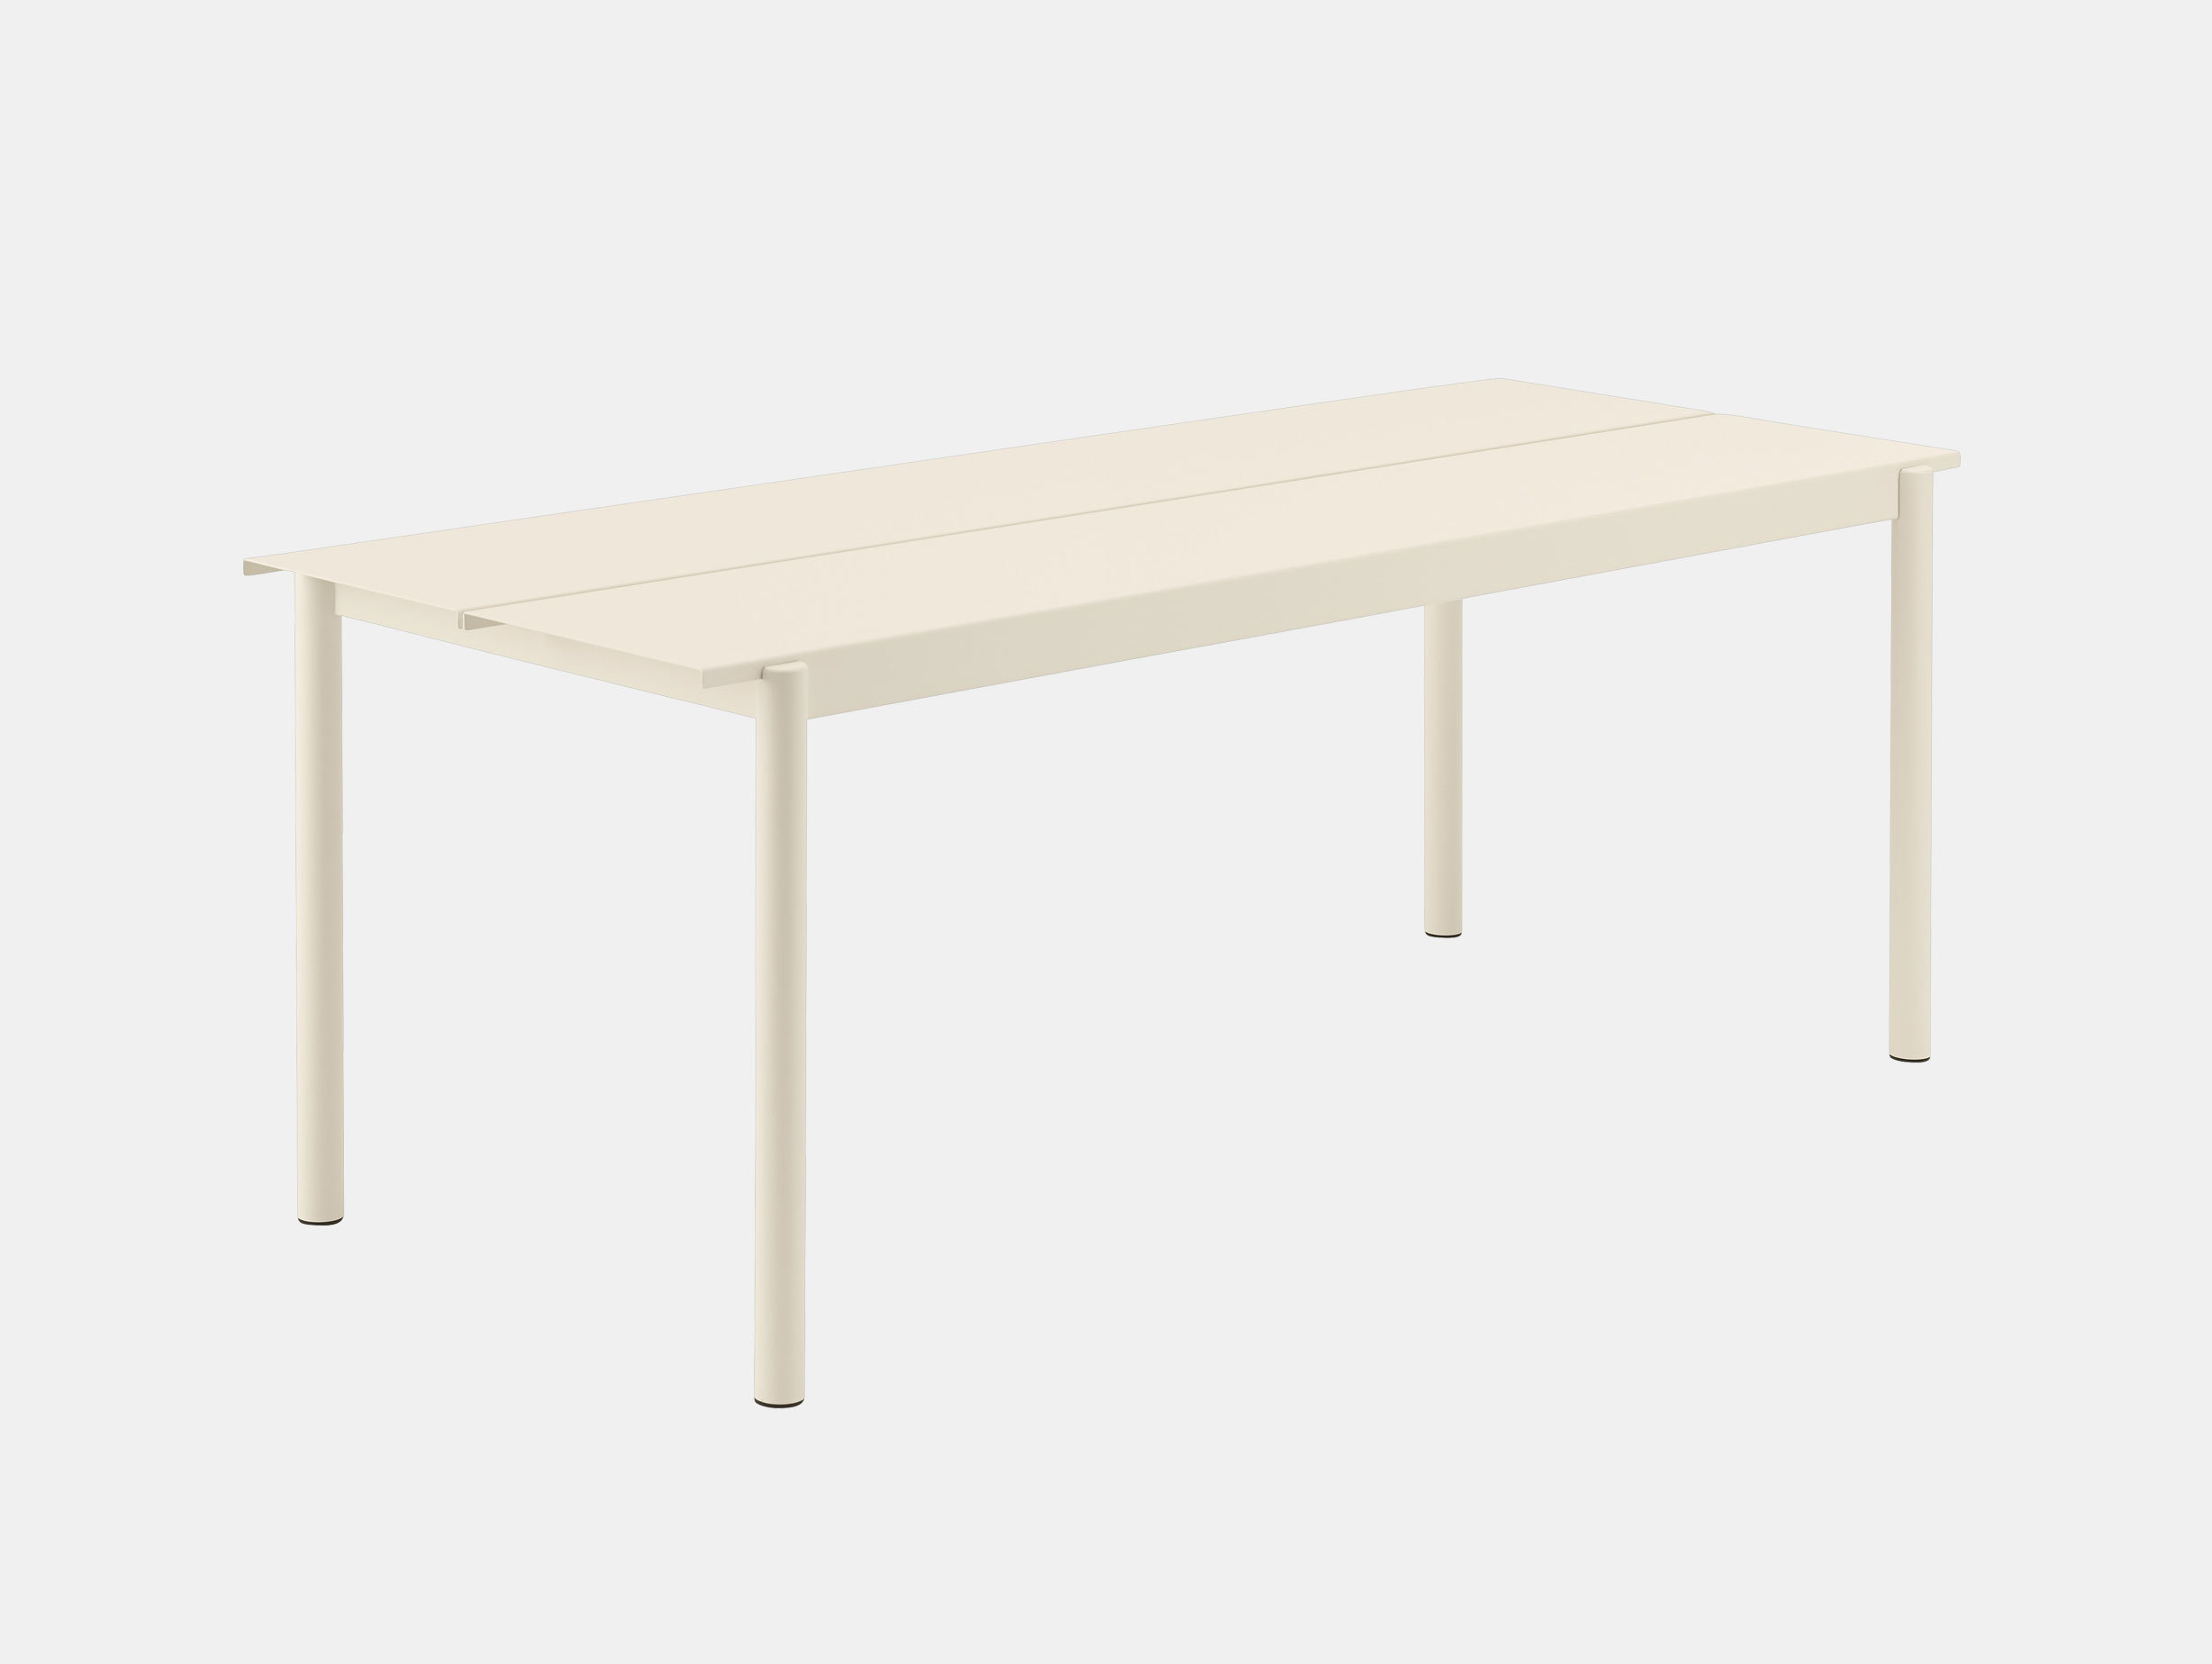 Muuto Linear Steel Outdoor Table L 200Cm Off White Thomas Bentzen